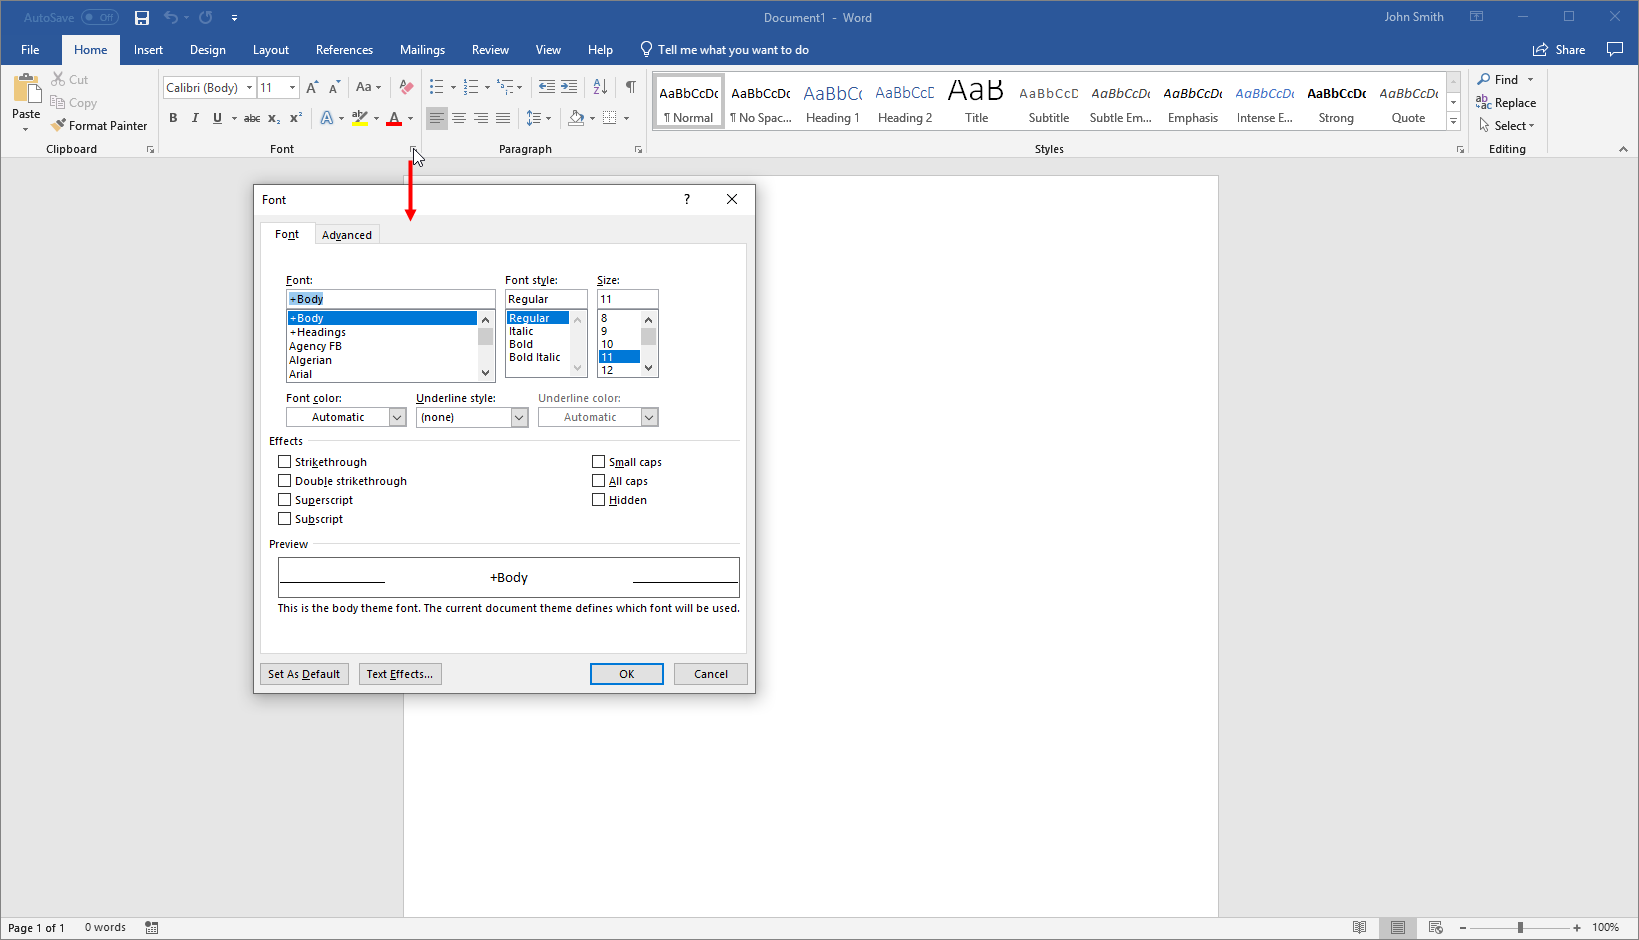 getting started with word 9